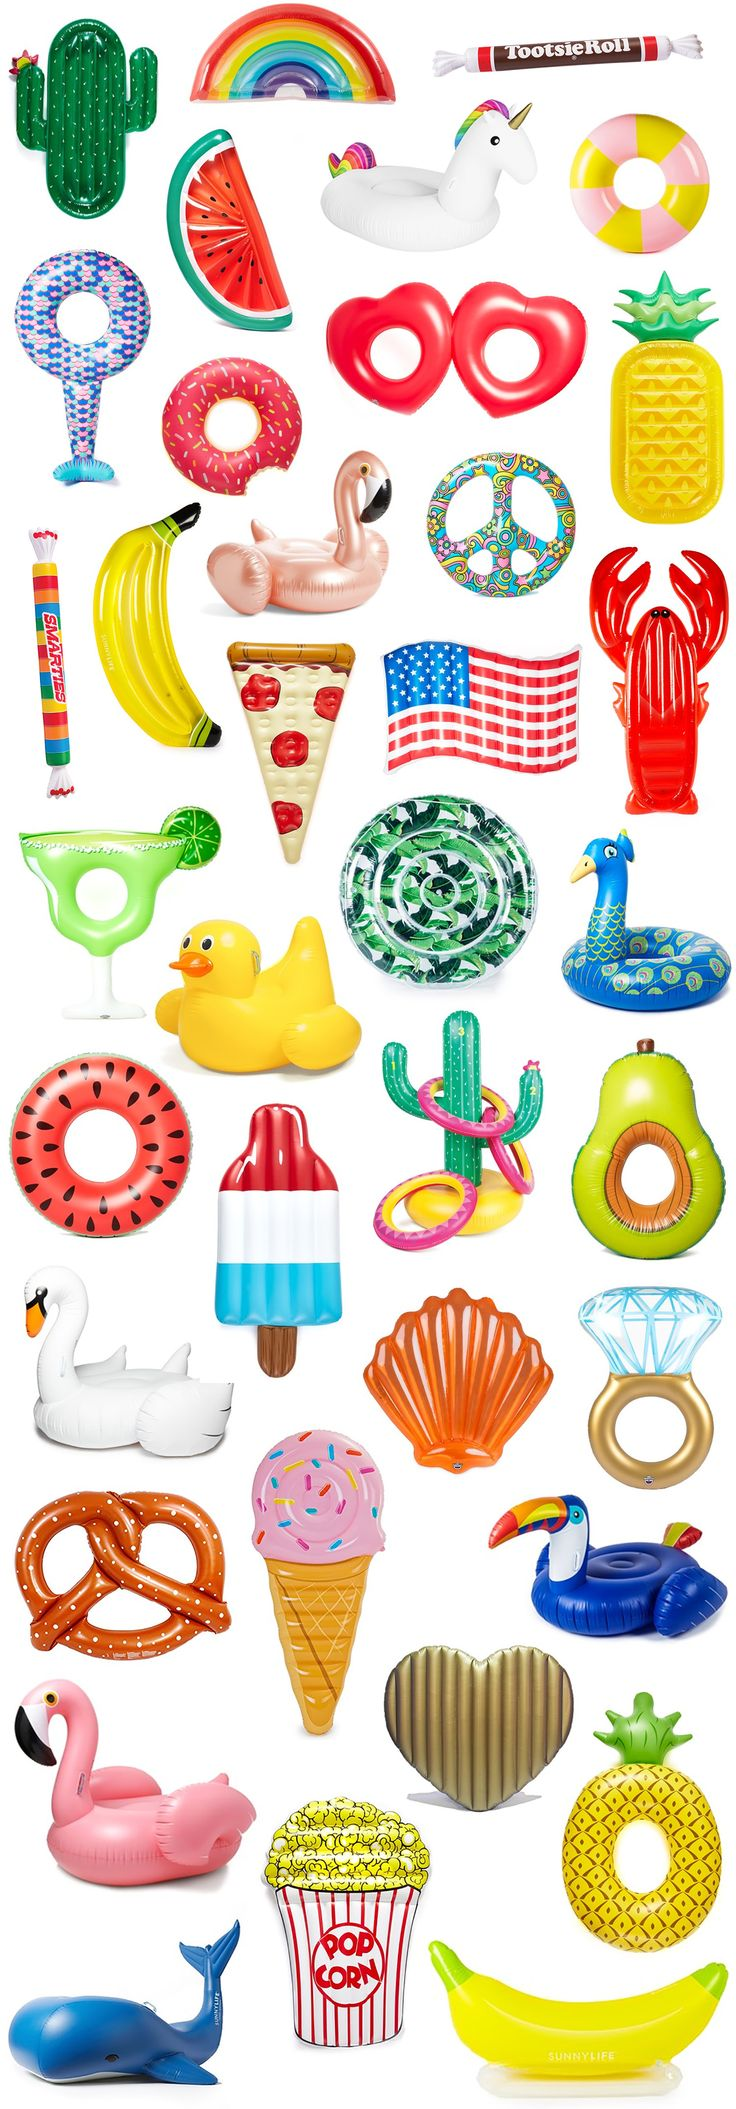 The best pool floats for Spring Break and summer vacation + how to score them at an amazing sale price! | Pool party essentials | Cute pool floats | Cactus, rainbow, flamingo, watermelon, unicorn, striped, mermaid tail, banana, rose gold flamingo, donut, donut with sprinkles, seashell, diamond ring, avocado, lobster, pineapple, heart, peace sign, margarita, swan, American flag, pizza, Tootsie roll pool float | Florida blogger Ashley Brooke Nicholas